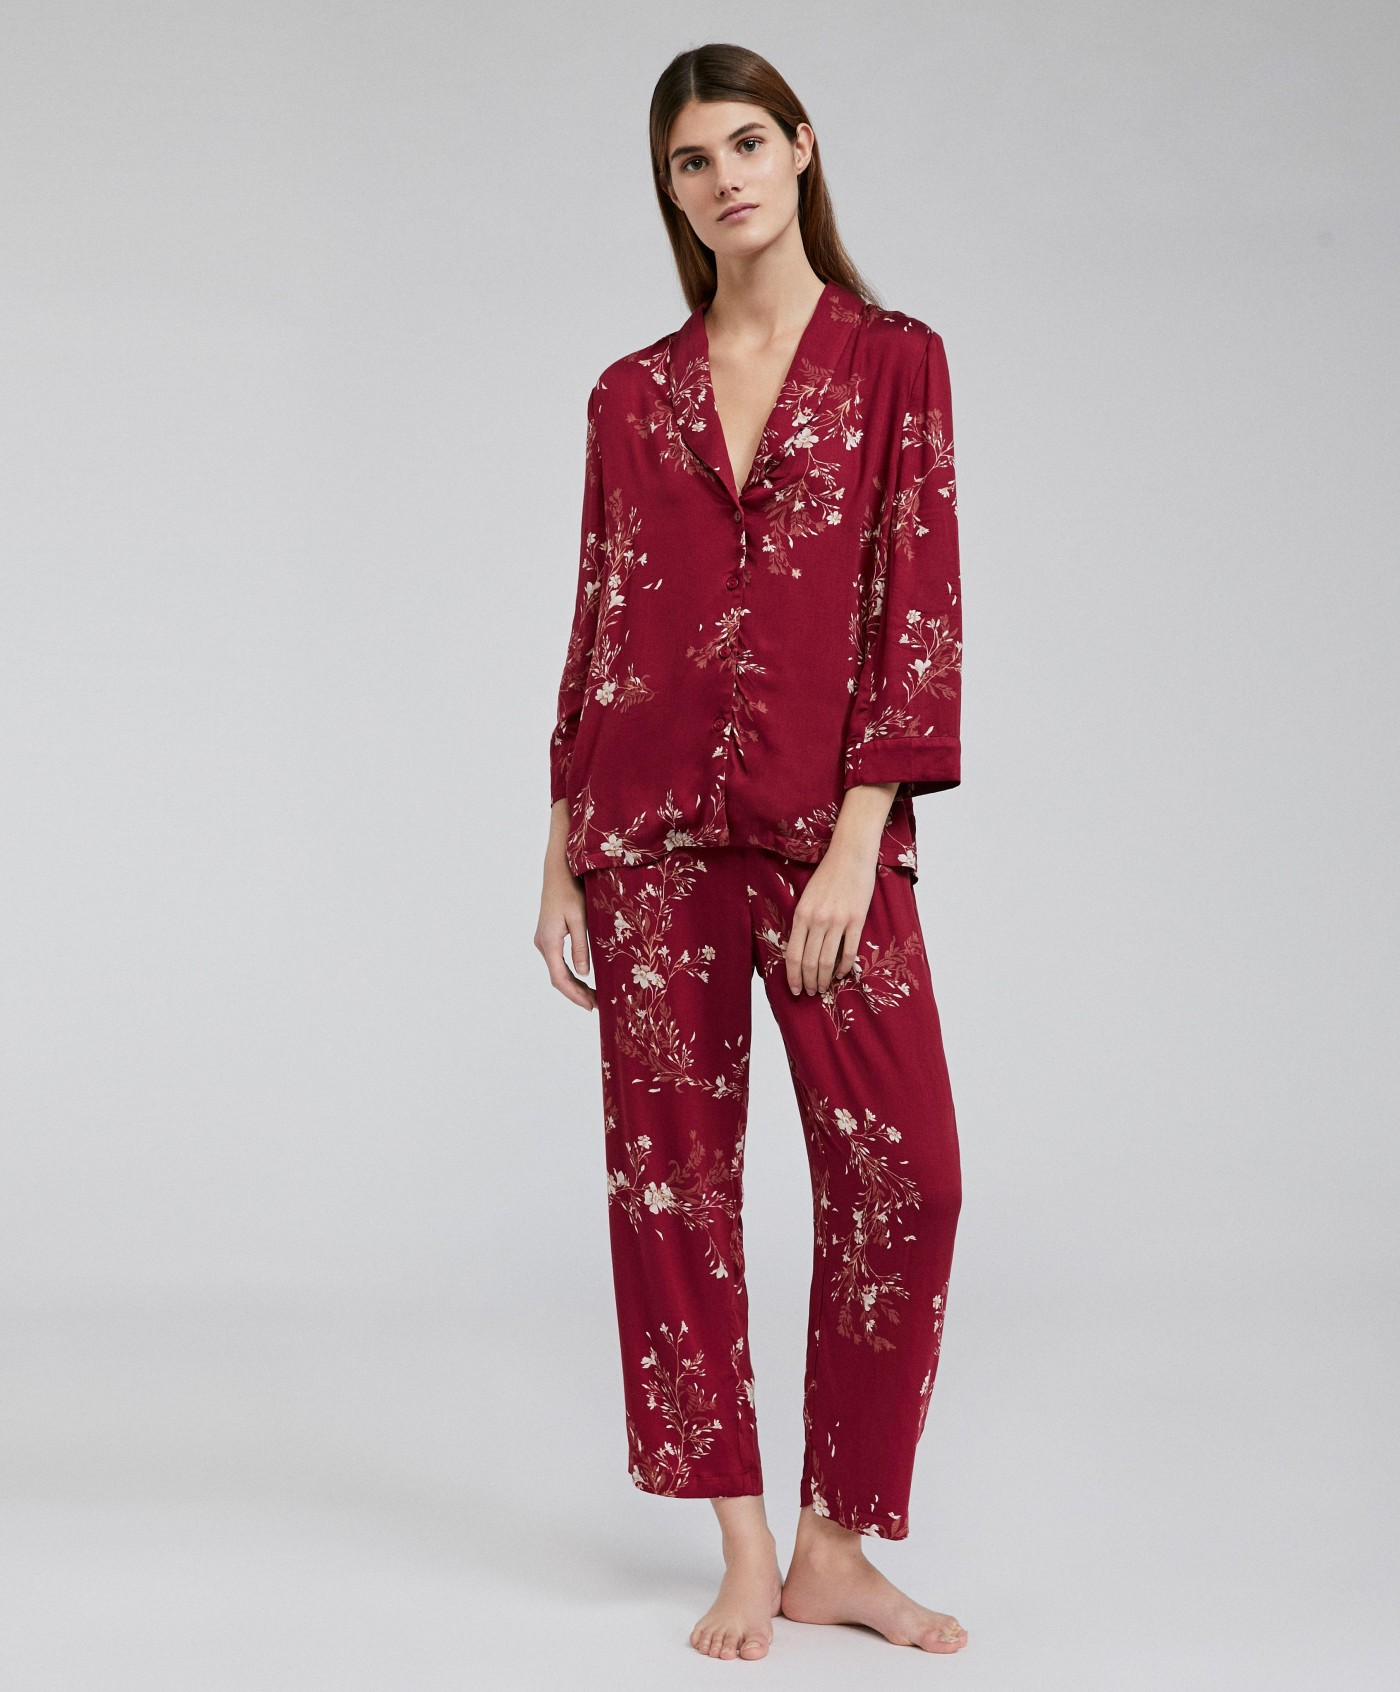 No time to snooze on sleepwear - EDITED